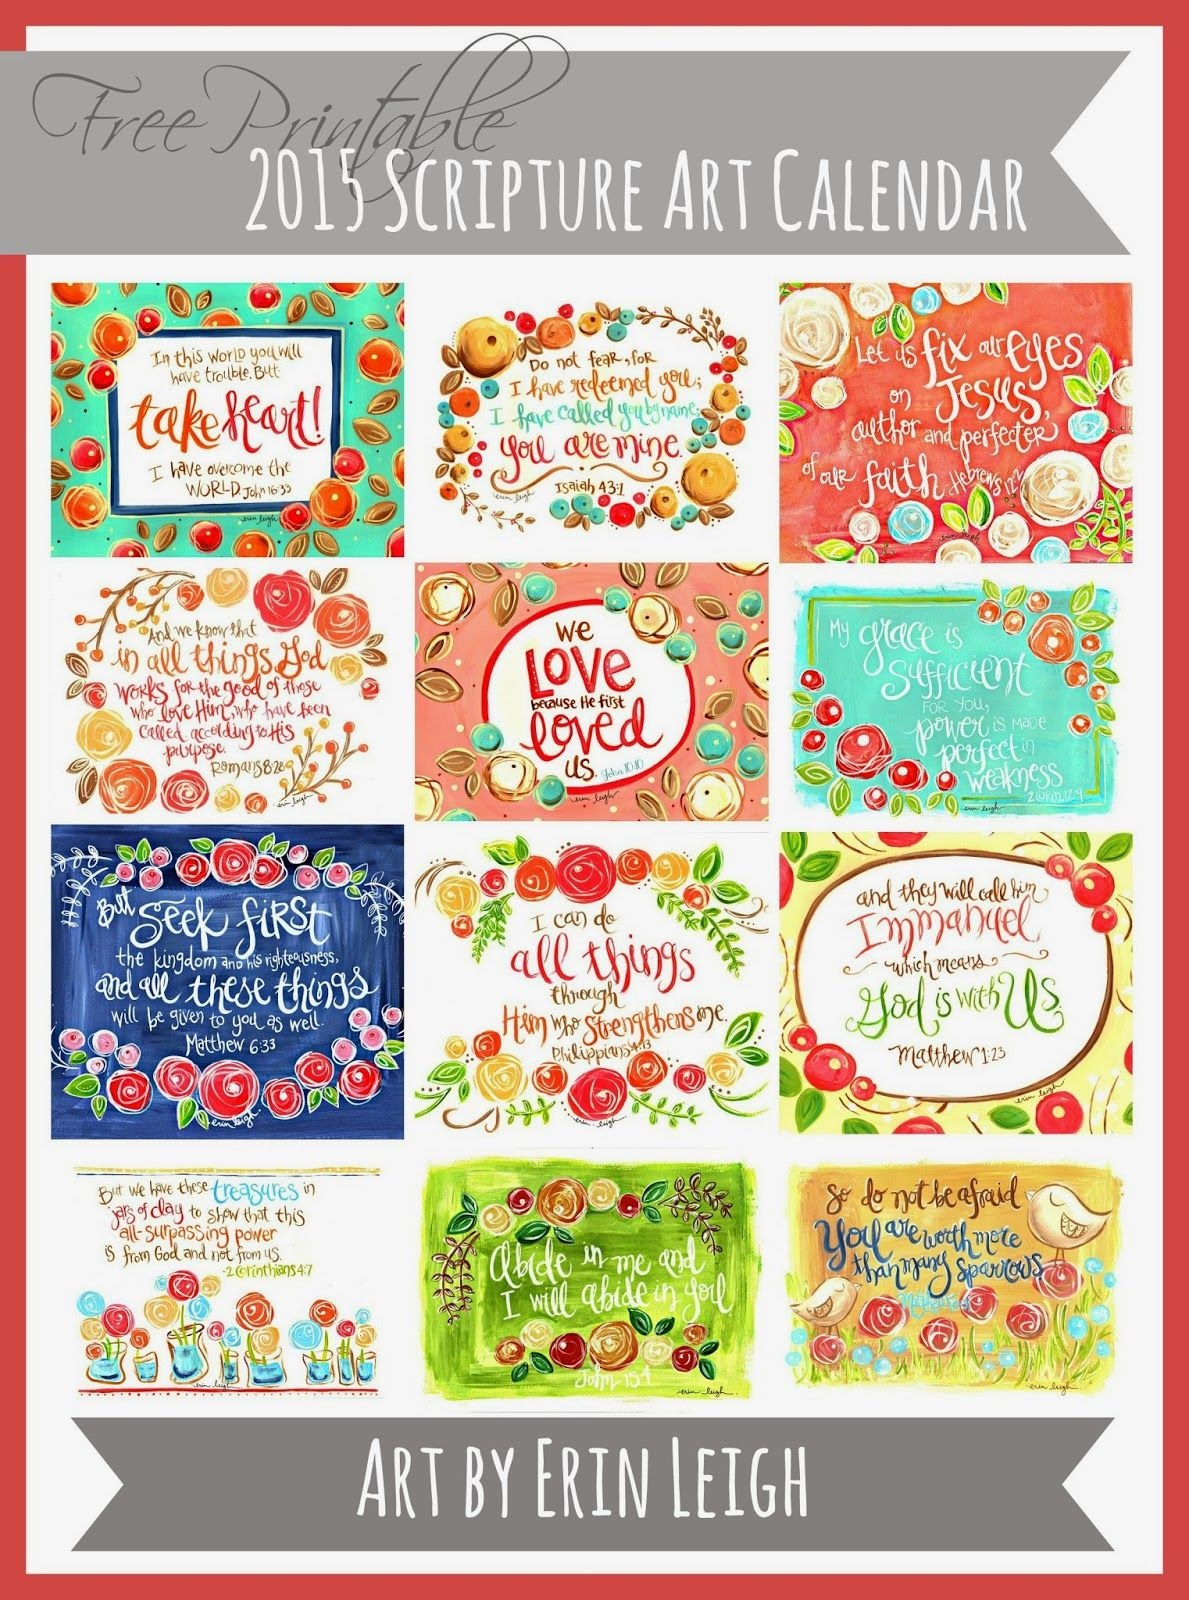 50+ 2015 Free Printable Calendars | Lolly Jane | Features - Free Printable Christian Art